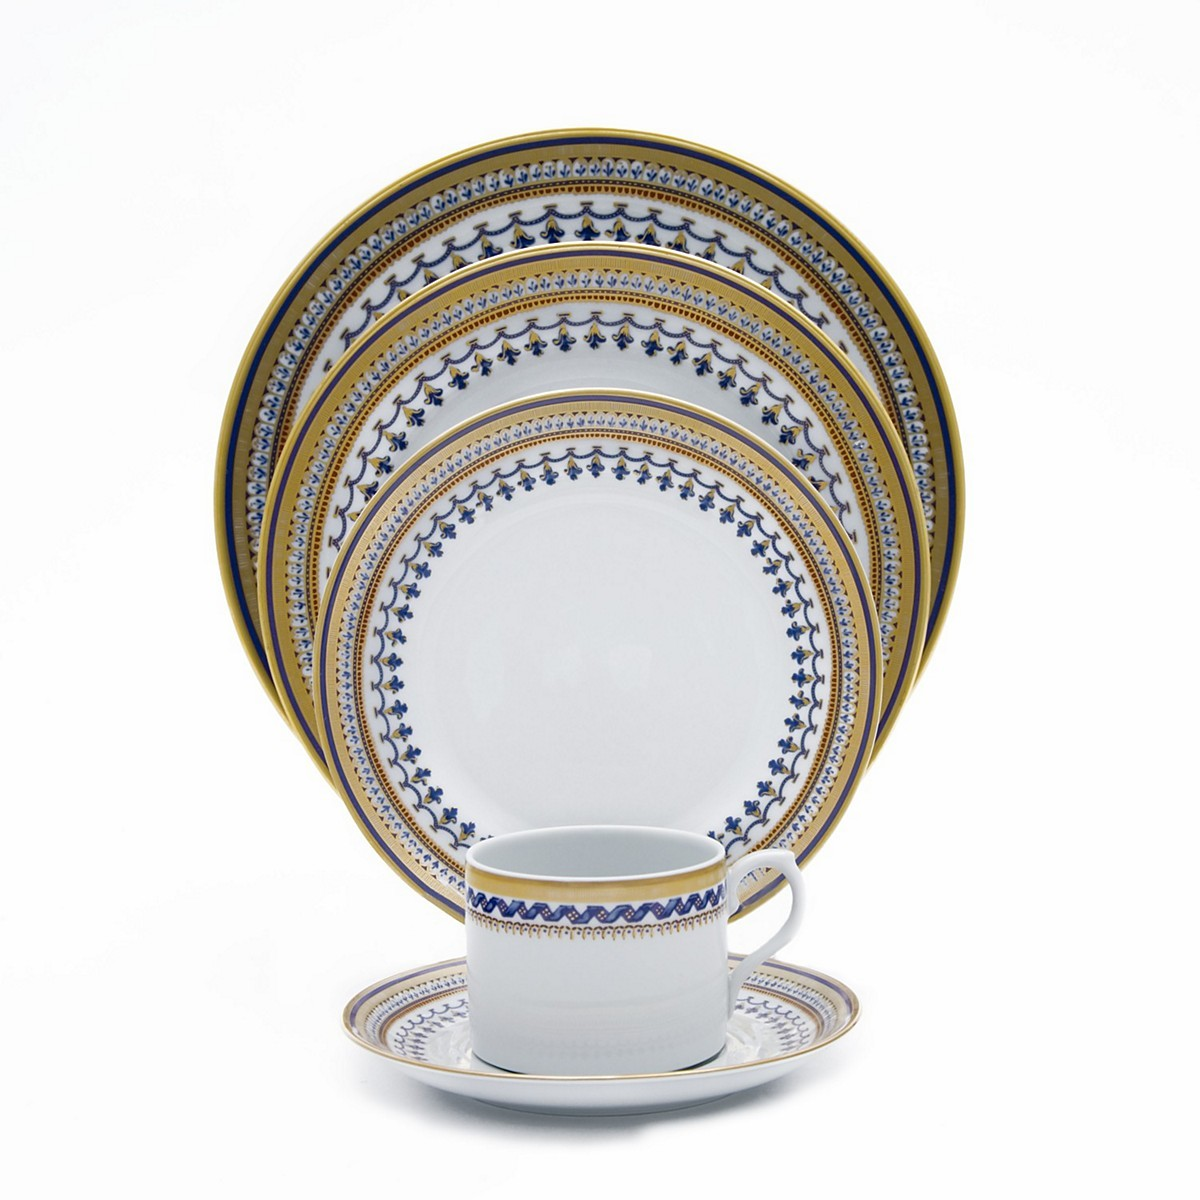 Mottahedeh Chinoise Blue 5 Piece Place Setting